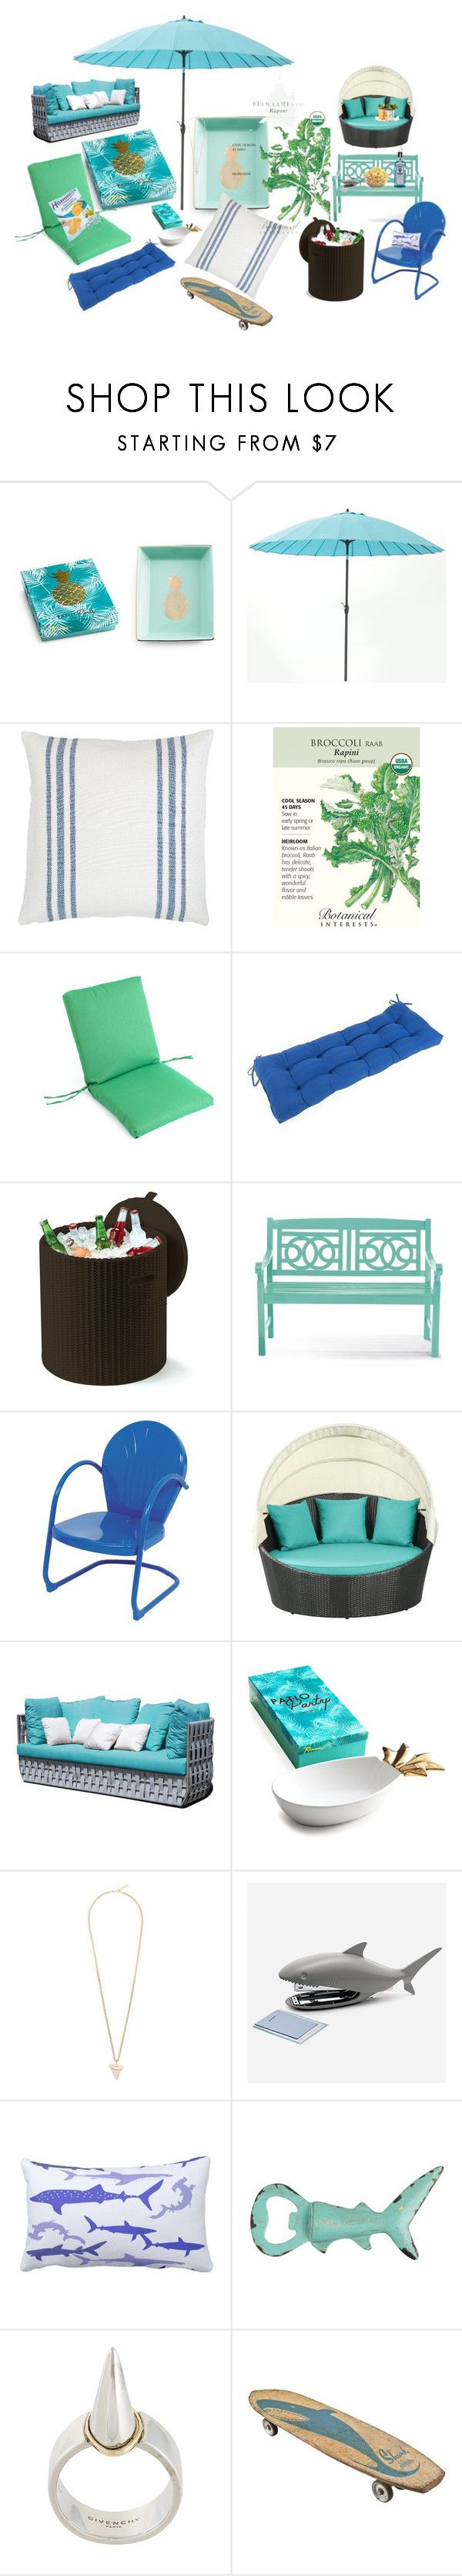 """""""🐳43 DAYS, 10 HOURS, SHARK WEEK 2017🐬"""" by forever-seventeen ❤ liked on Polyvore featuring interior, interiors, interior design, home, home decor, interior decorating, Rosanna, Keter, Skyline and Givenchy"""